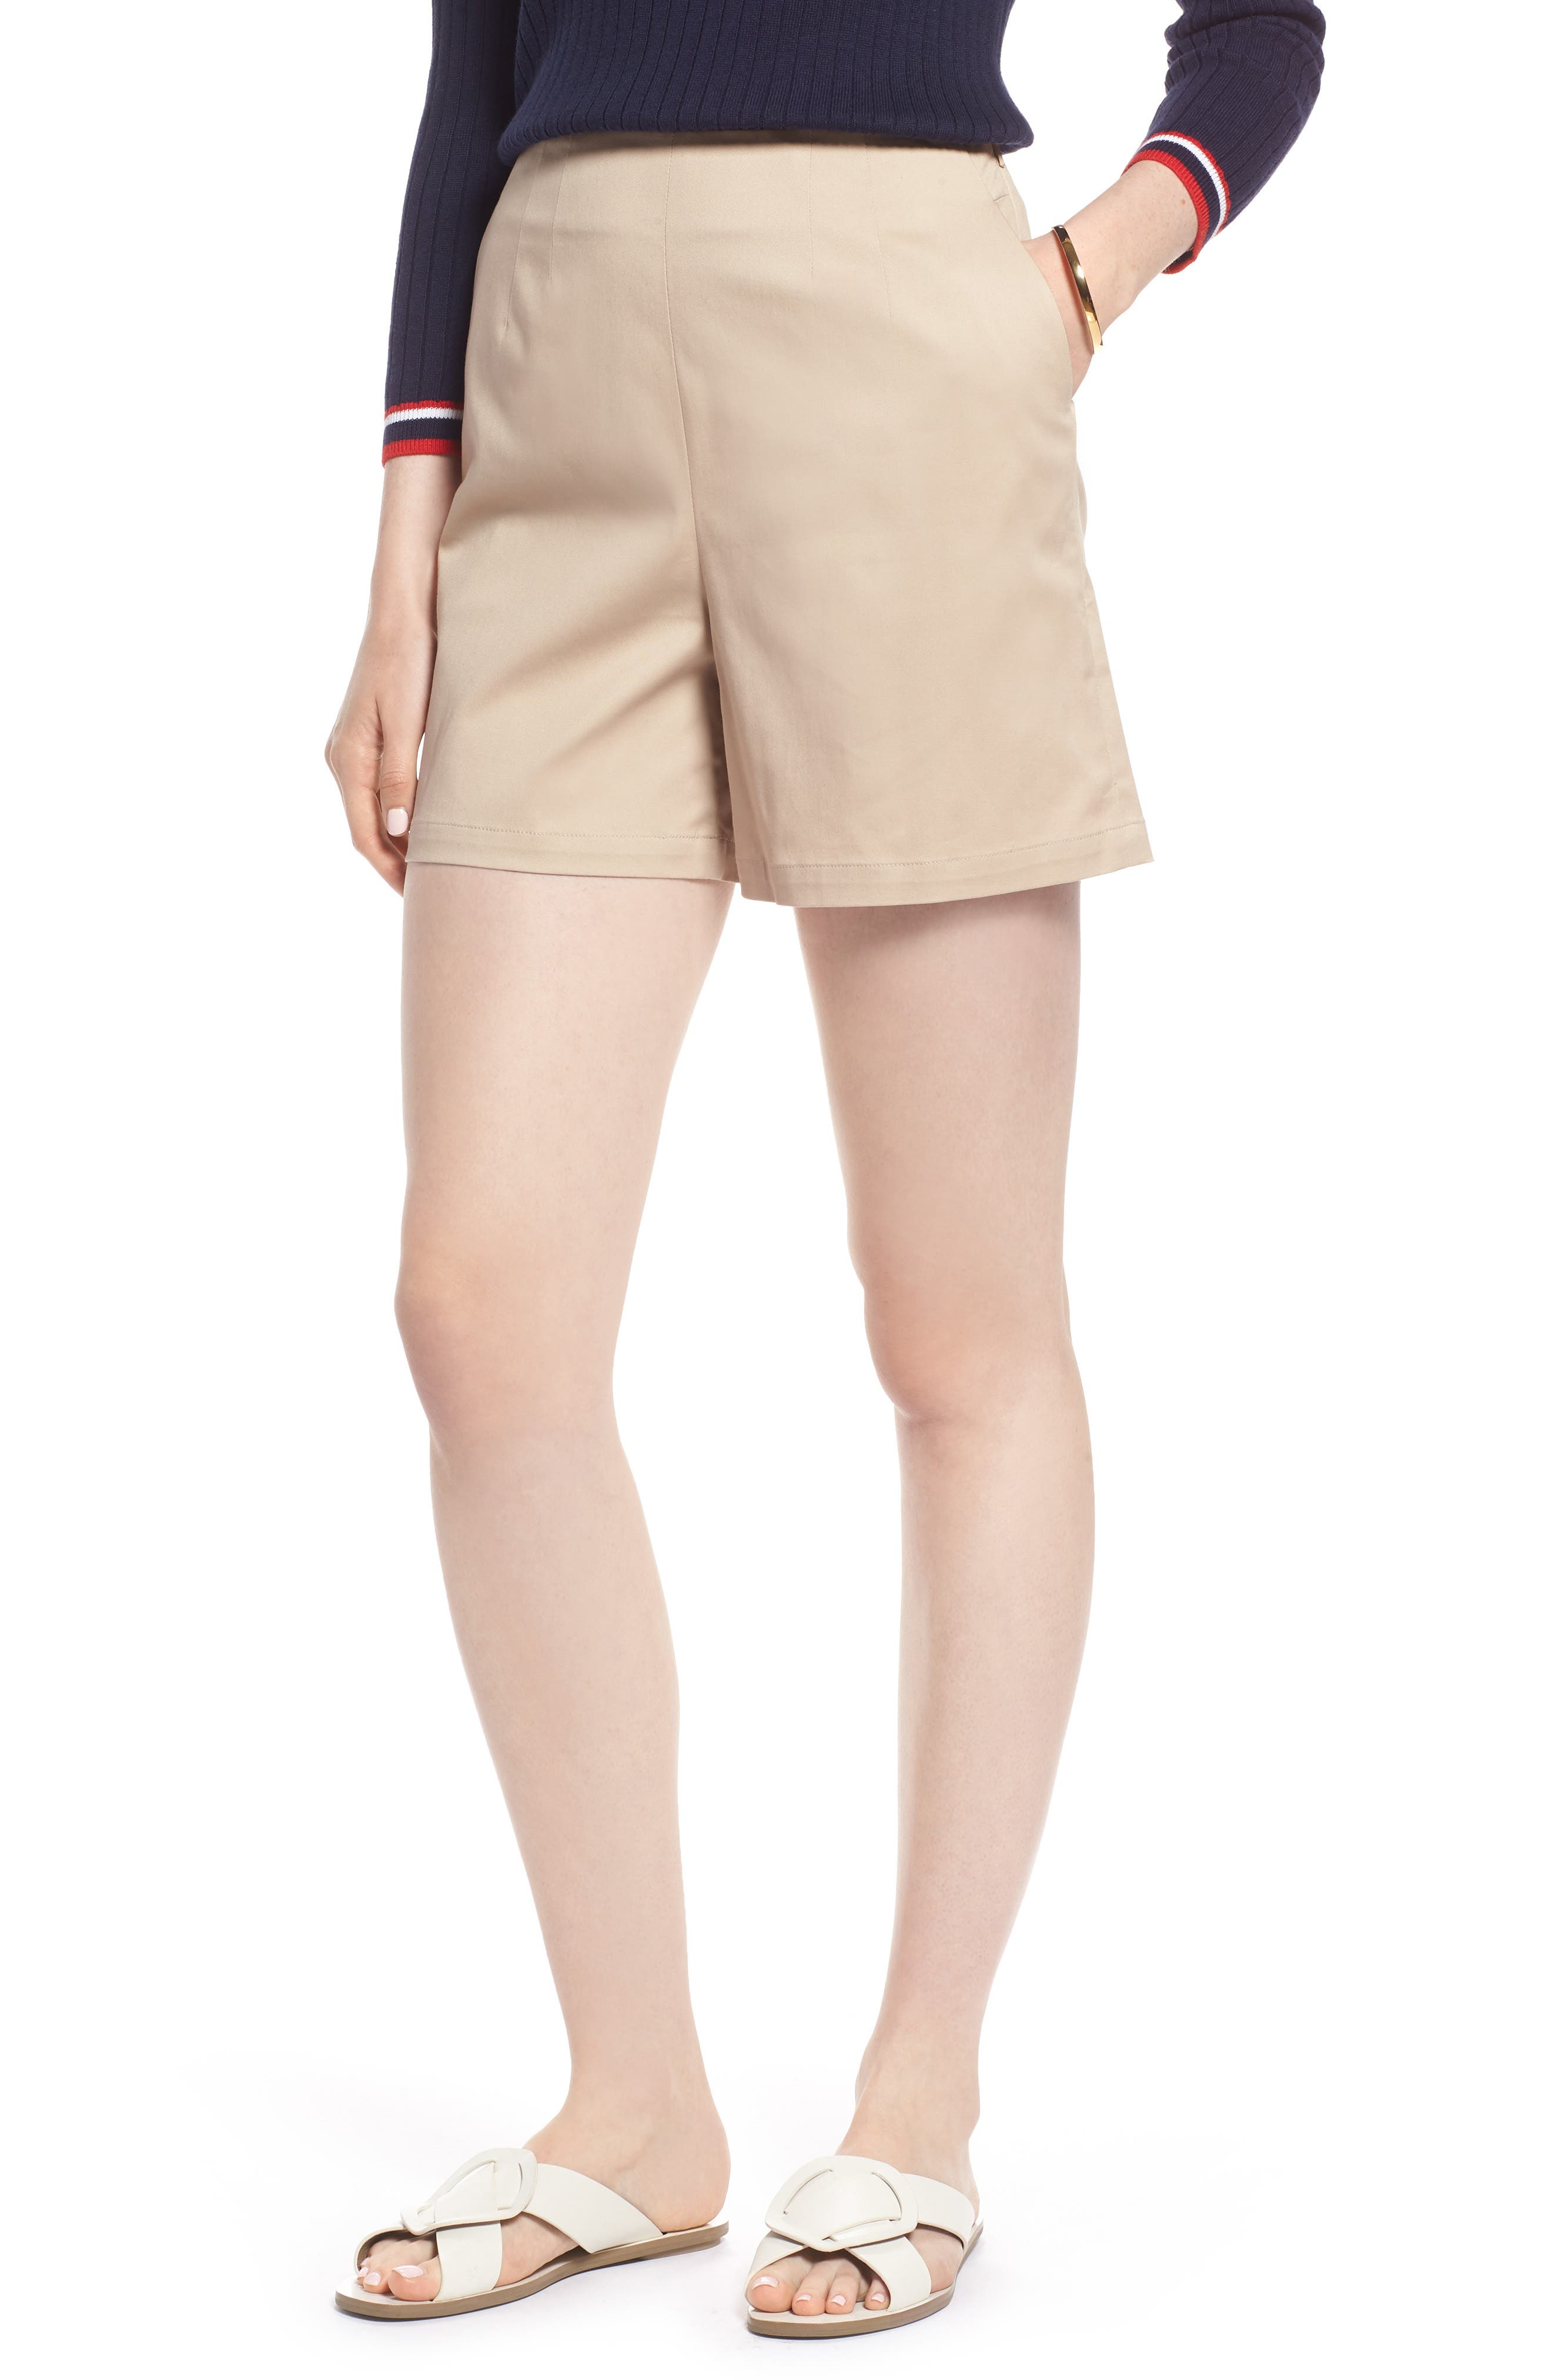 Clean Twill Shorts,                         Main,                         color, Tan